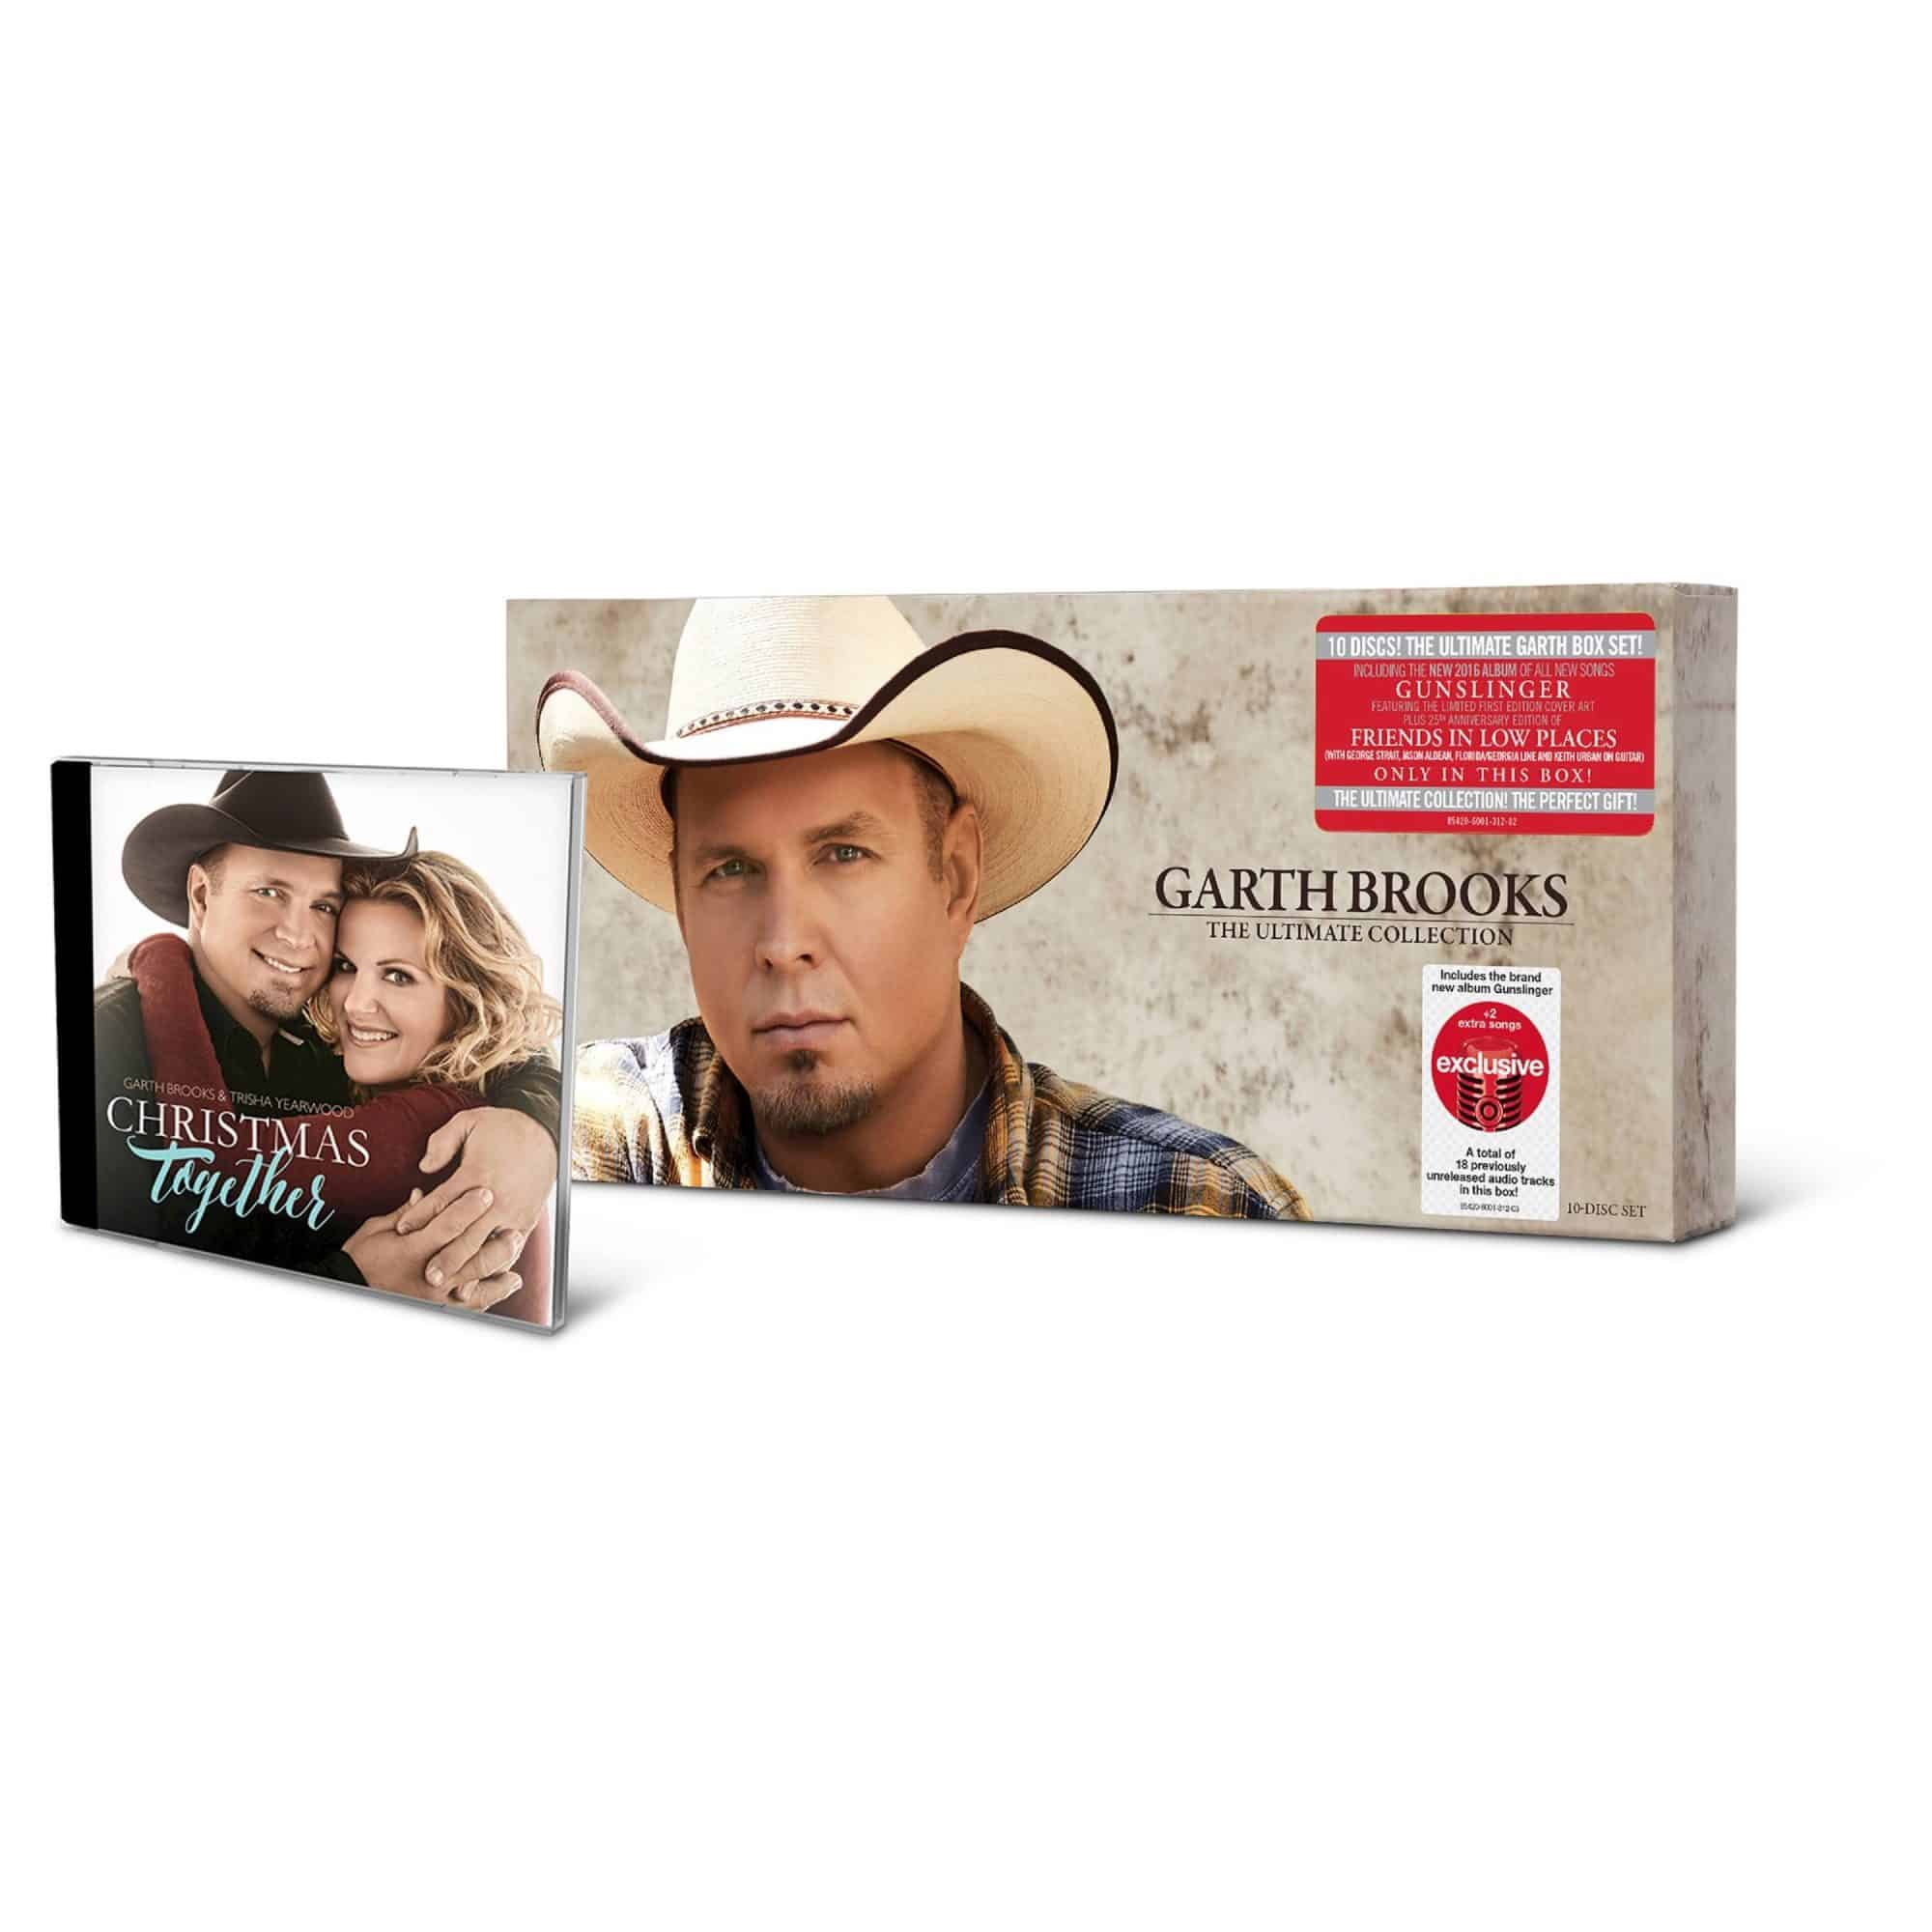 Garth Brooks Christmas Album.Ropin The Wind Garth Brooks To Release Target Exclusive Box The